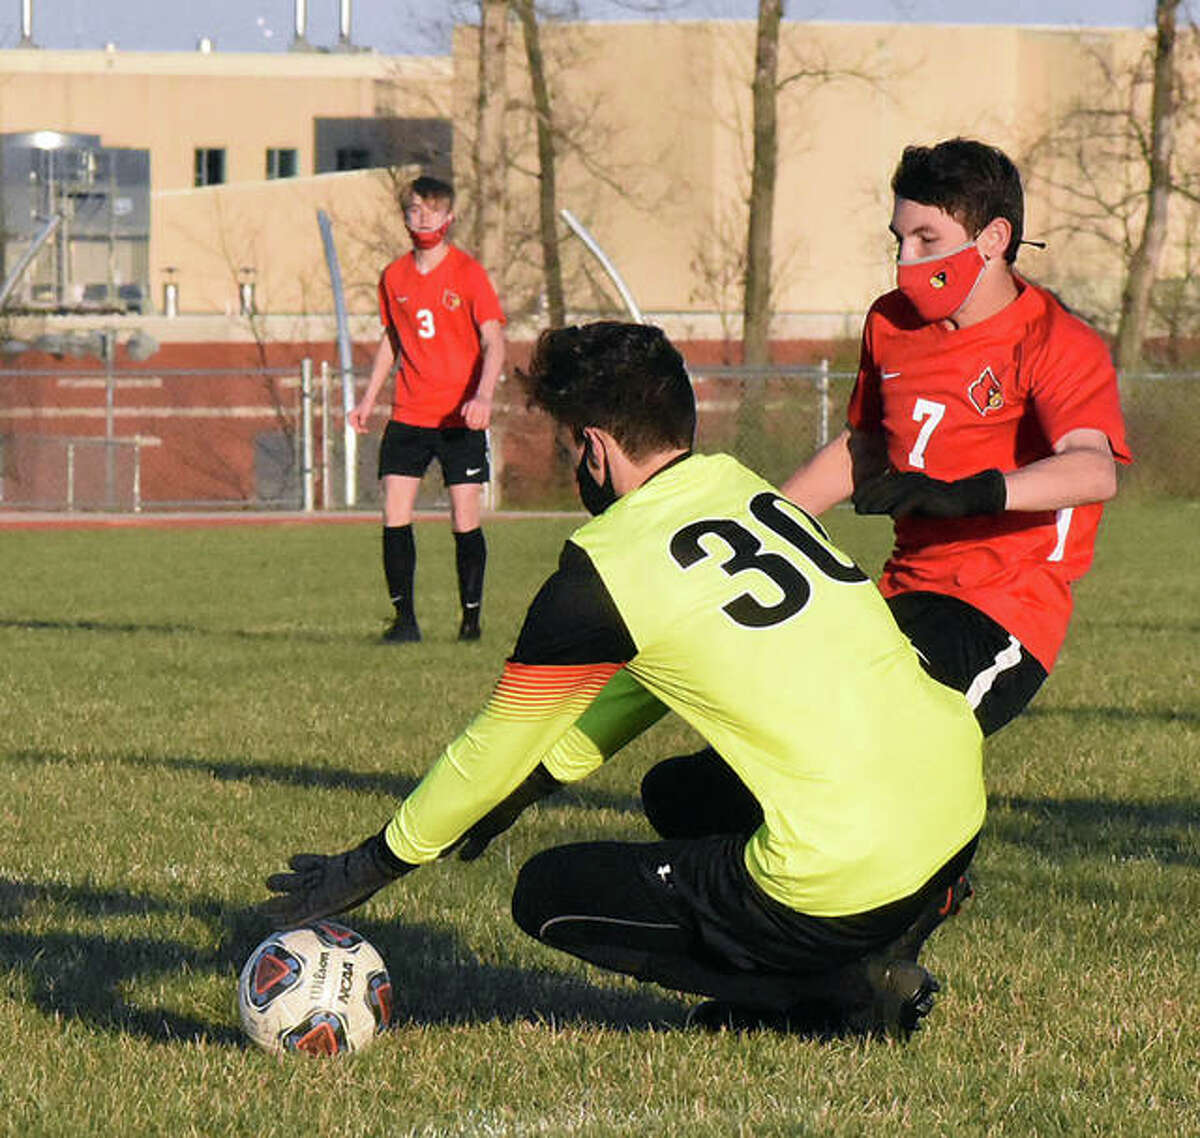 EHS keeper Kadin Chiapelli covers up a ball in the 18-yard box before Alton's Nick Rayfield can get a foot on it early in Thursday's game.